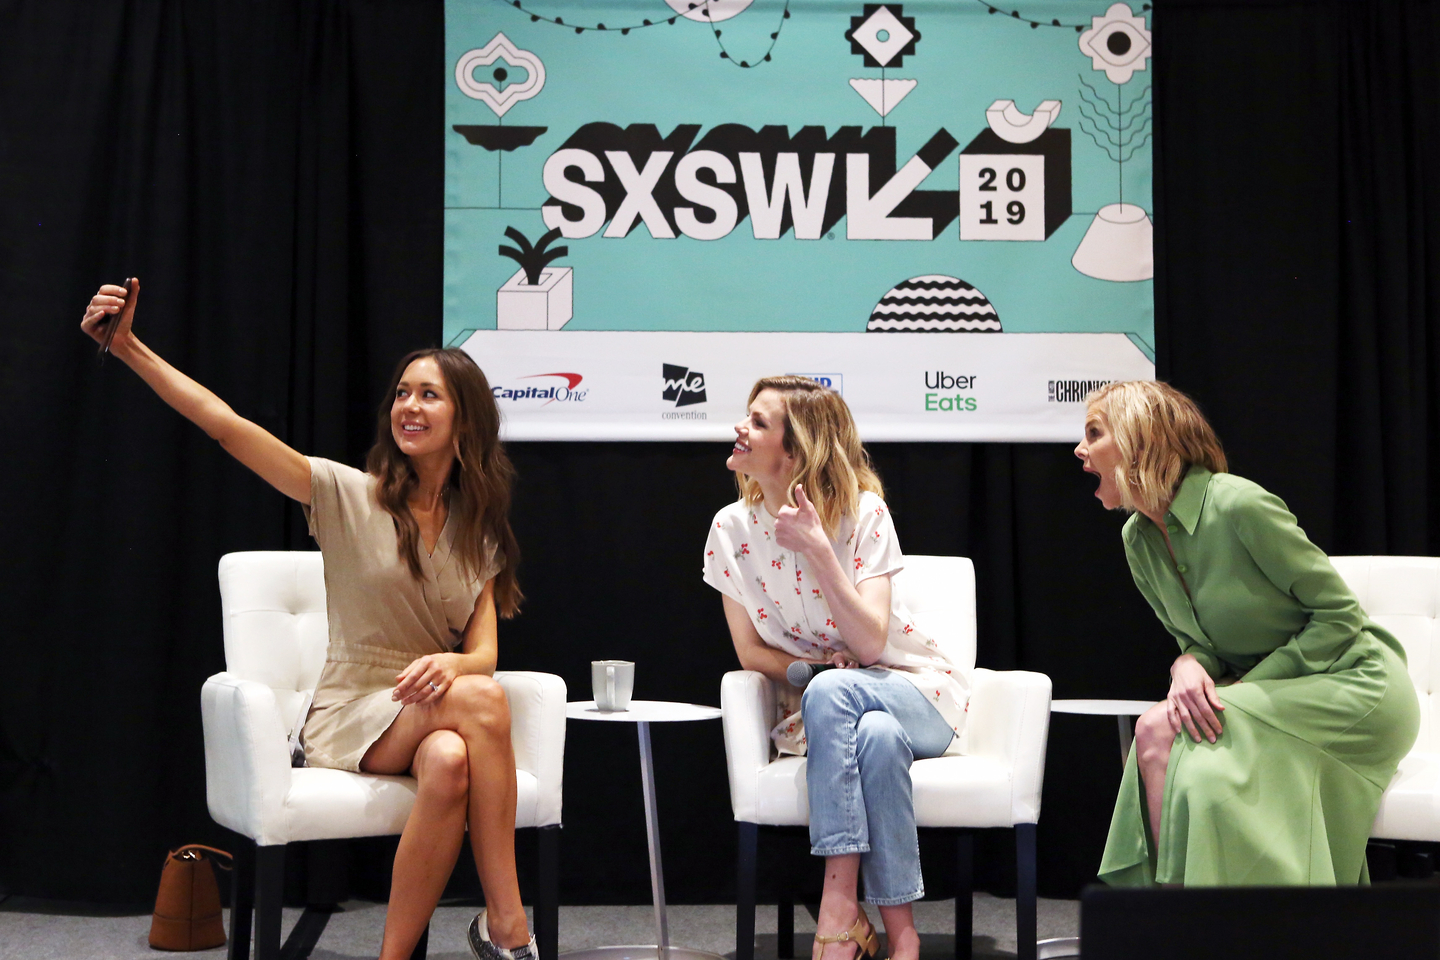 (L-R) Camille Styles, Brooklyn Decker, and Whitney Casey at Promoting a Sustainable Fashion Economy with Tech - Photo by Travis P Ball/Getty Images for SXSW